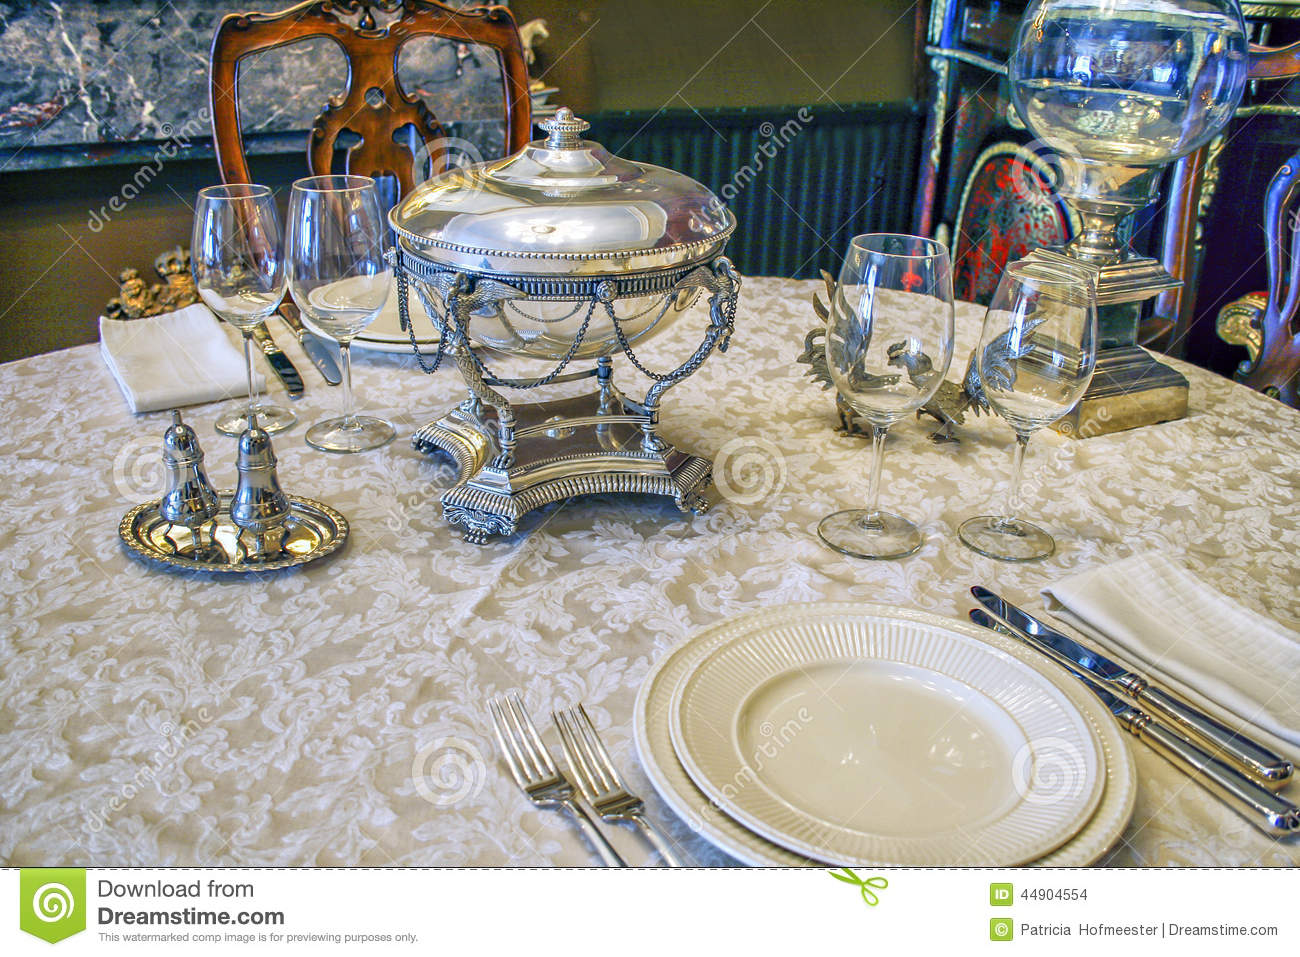 Antique tableware & Antique tableware stock photo. Image of historical place - 44904554